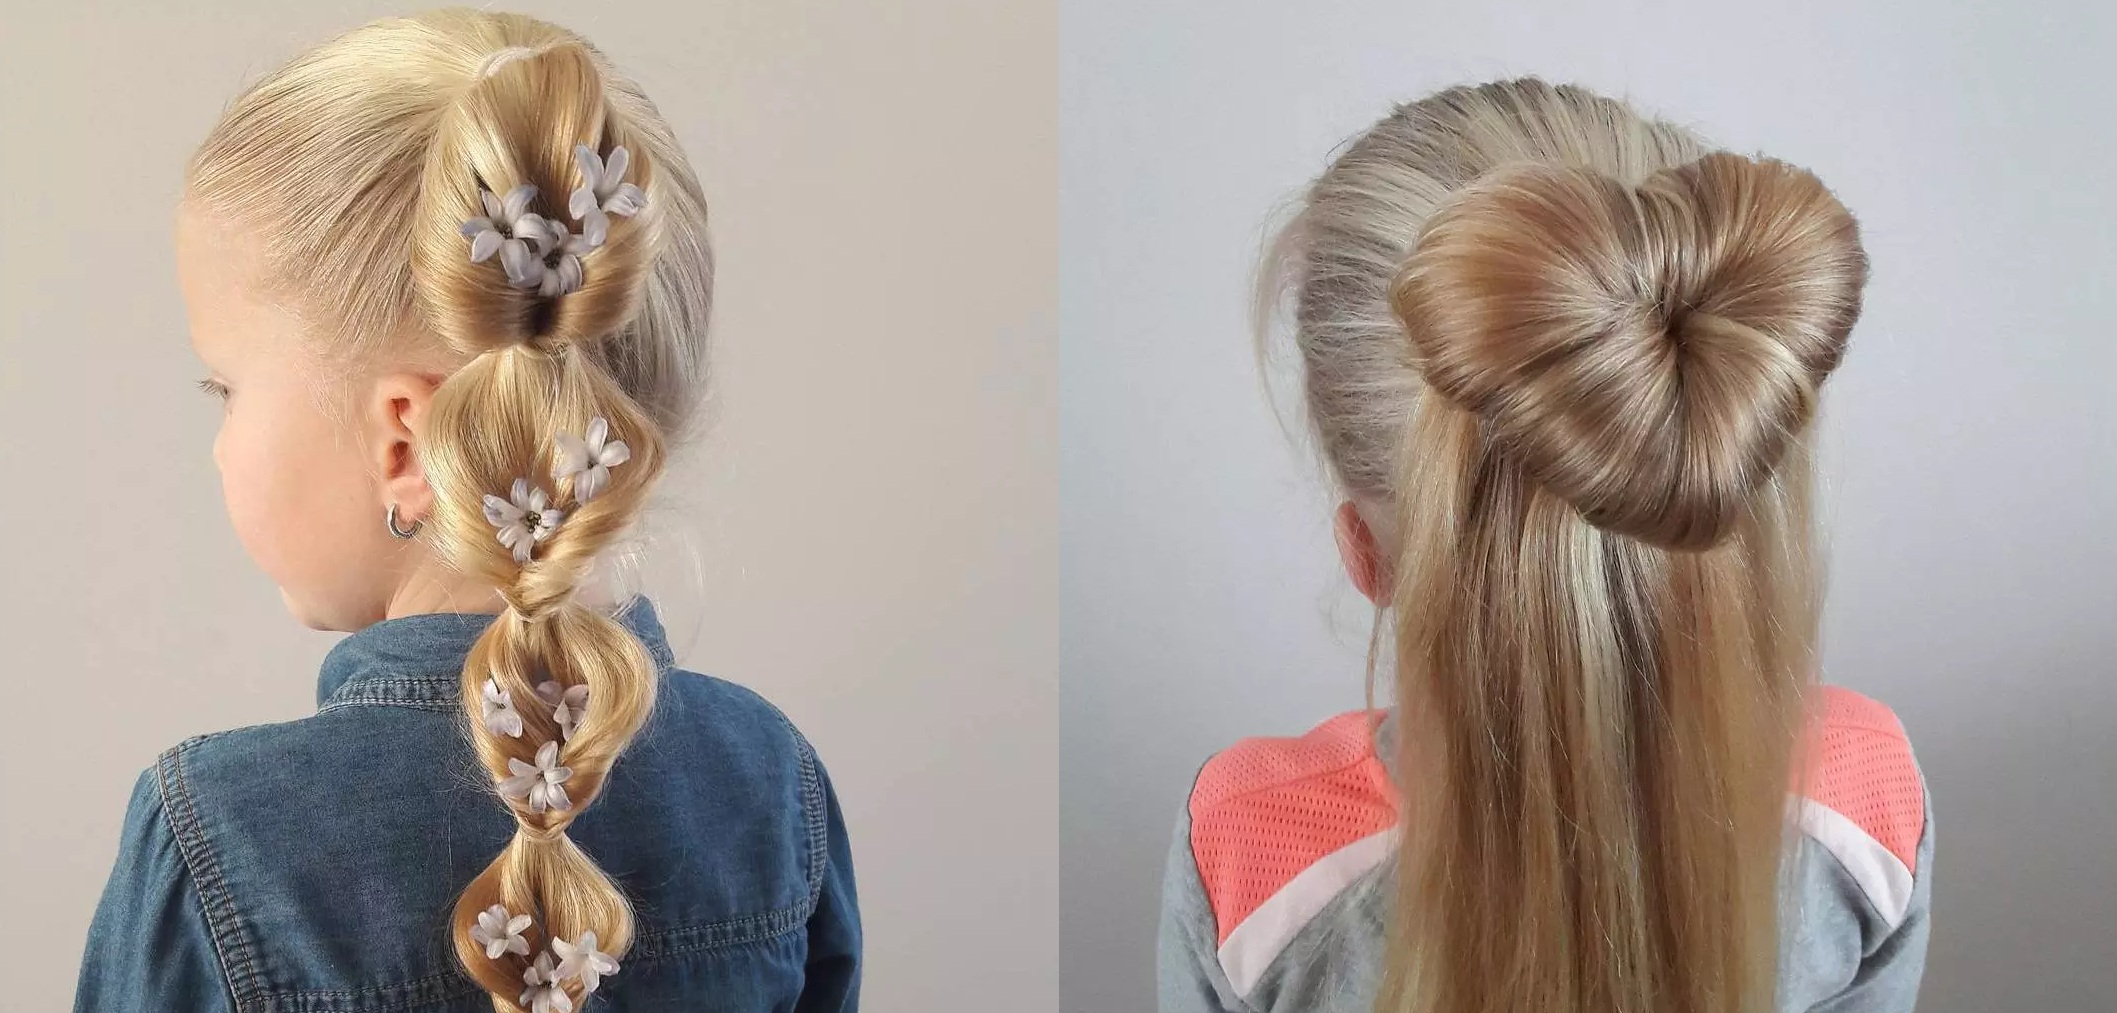 15 beautiful hairstyles for your little girl: inspire yourself Hairdressing